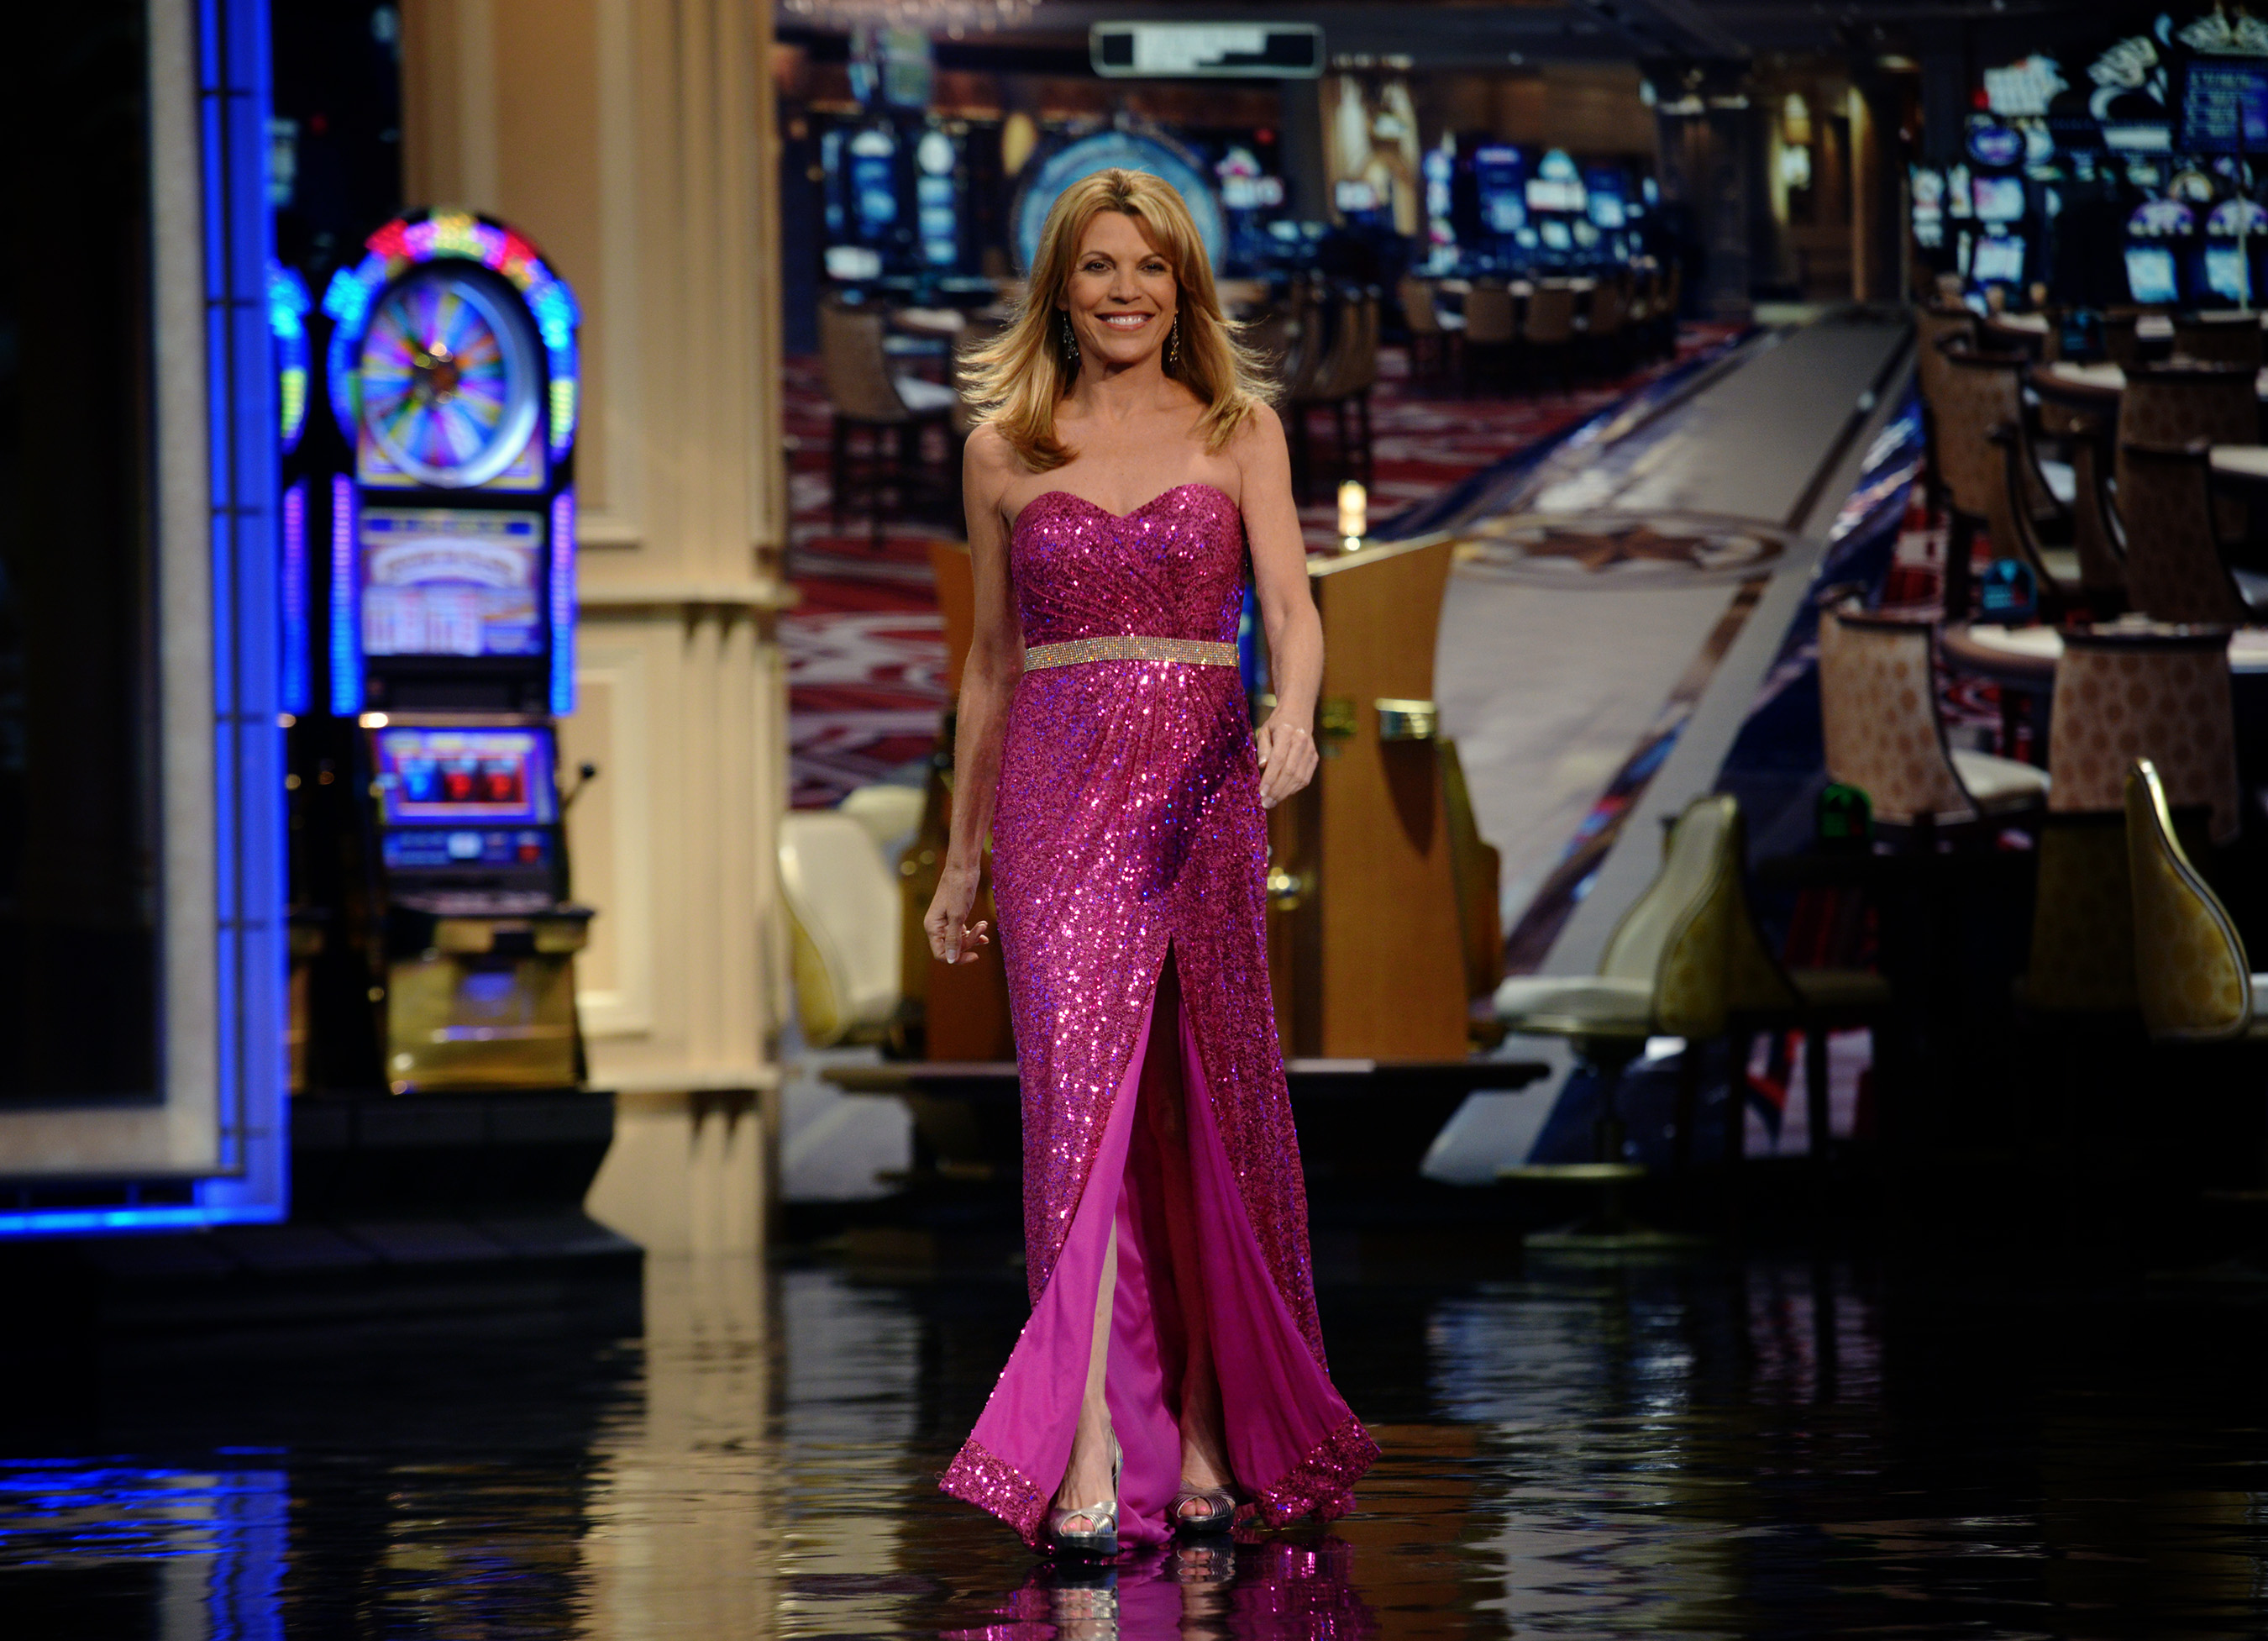 Vanna White Says She Still Regrets Her Playboy Cover Time